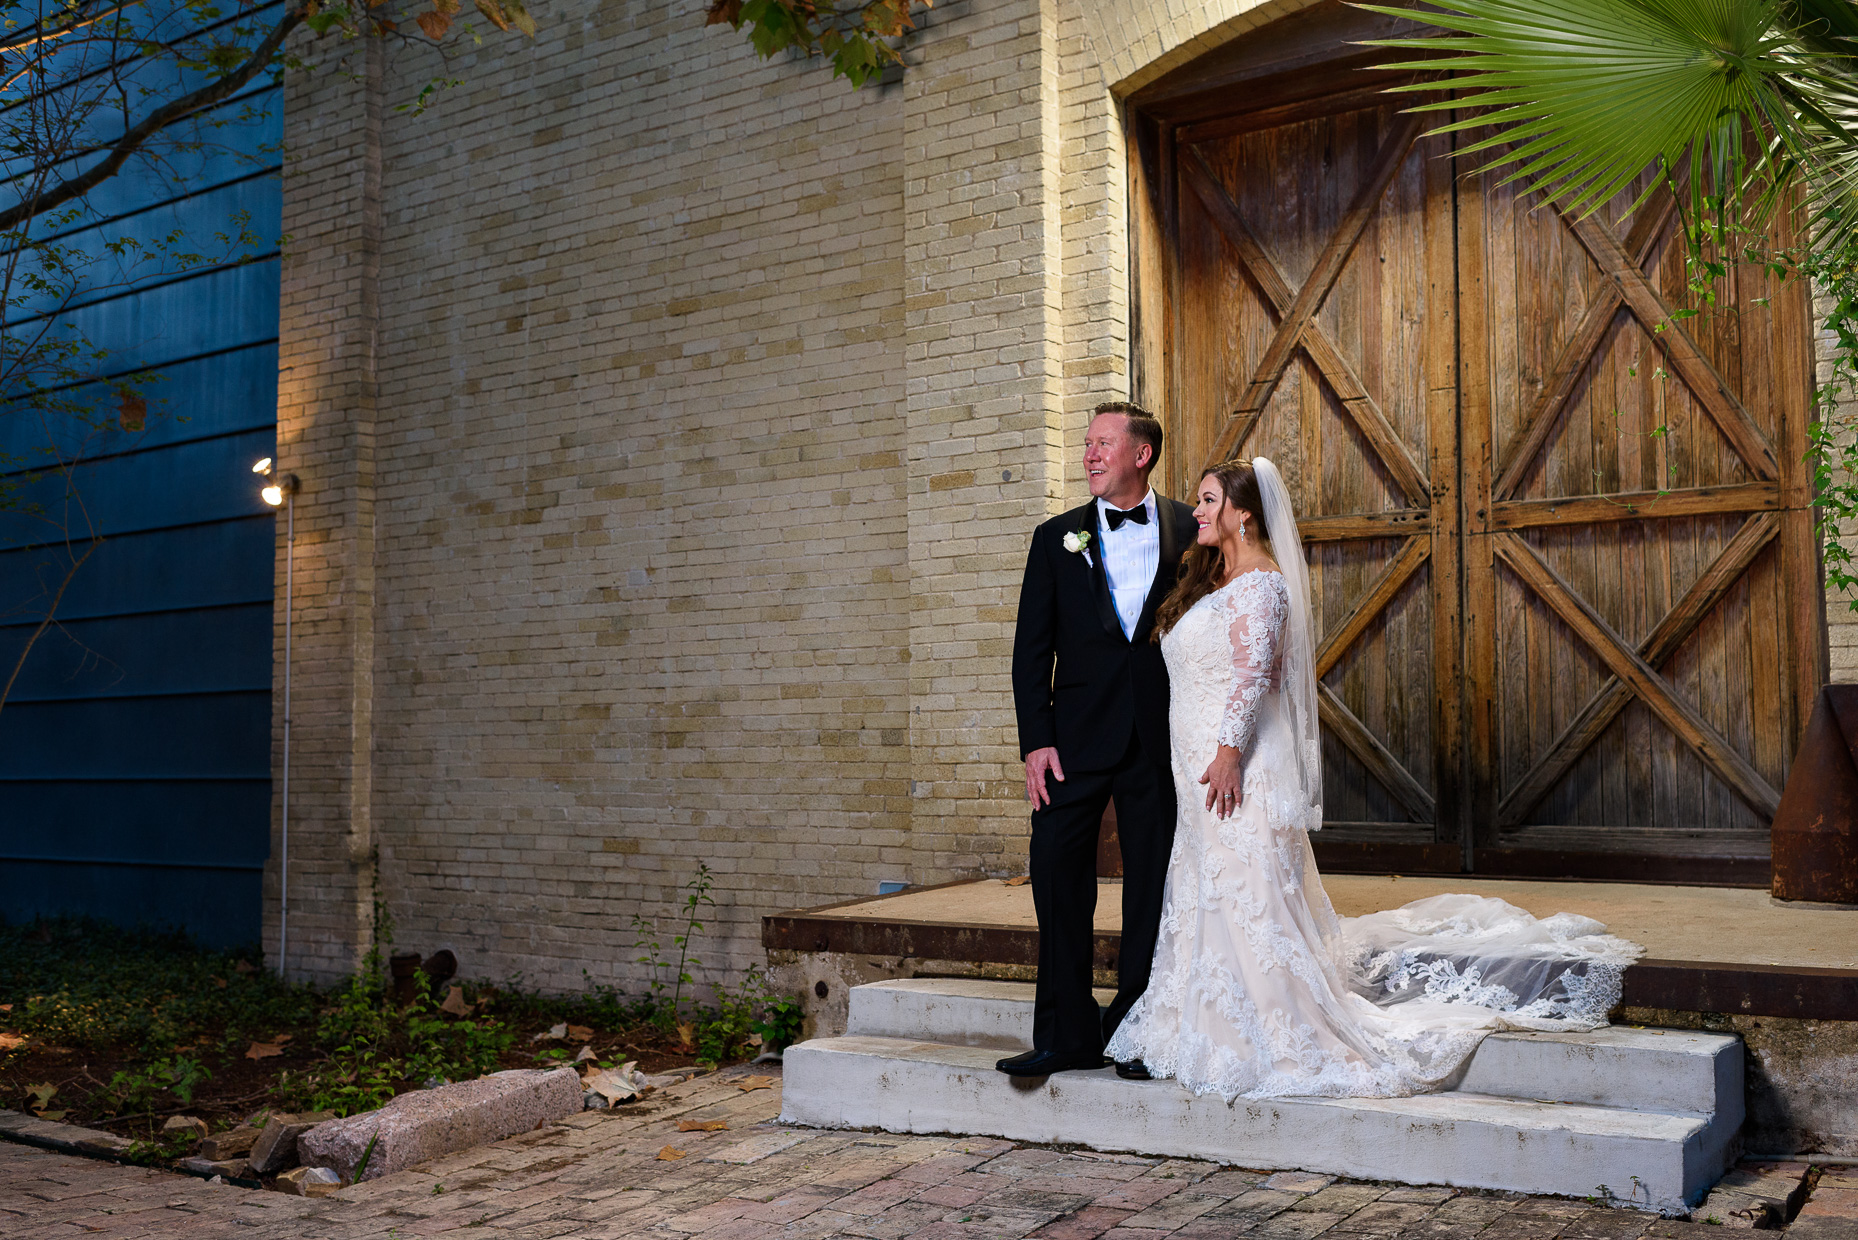 Austin-Wedding-Photographer-portrait-bride-groom-zaza-san-antonio